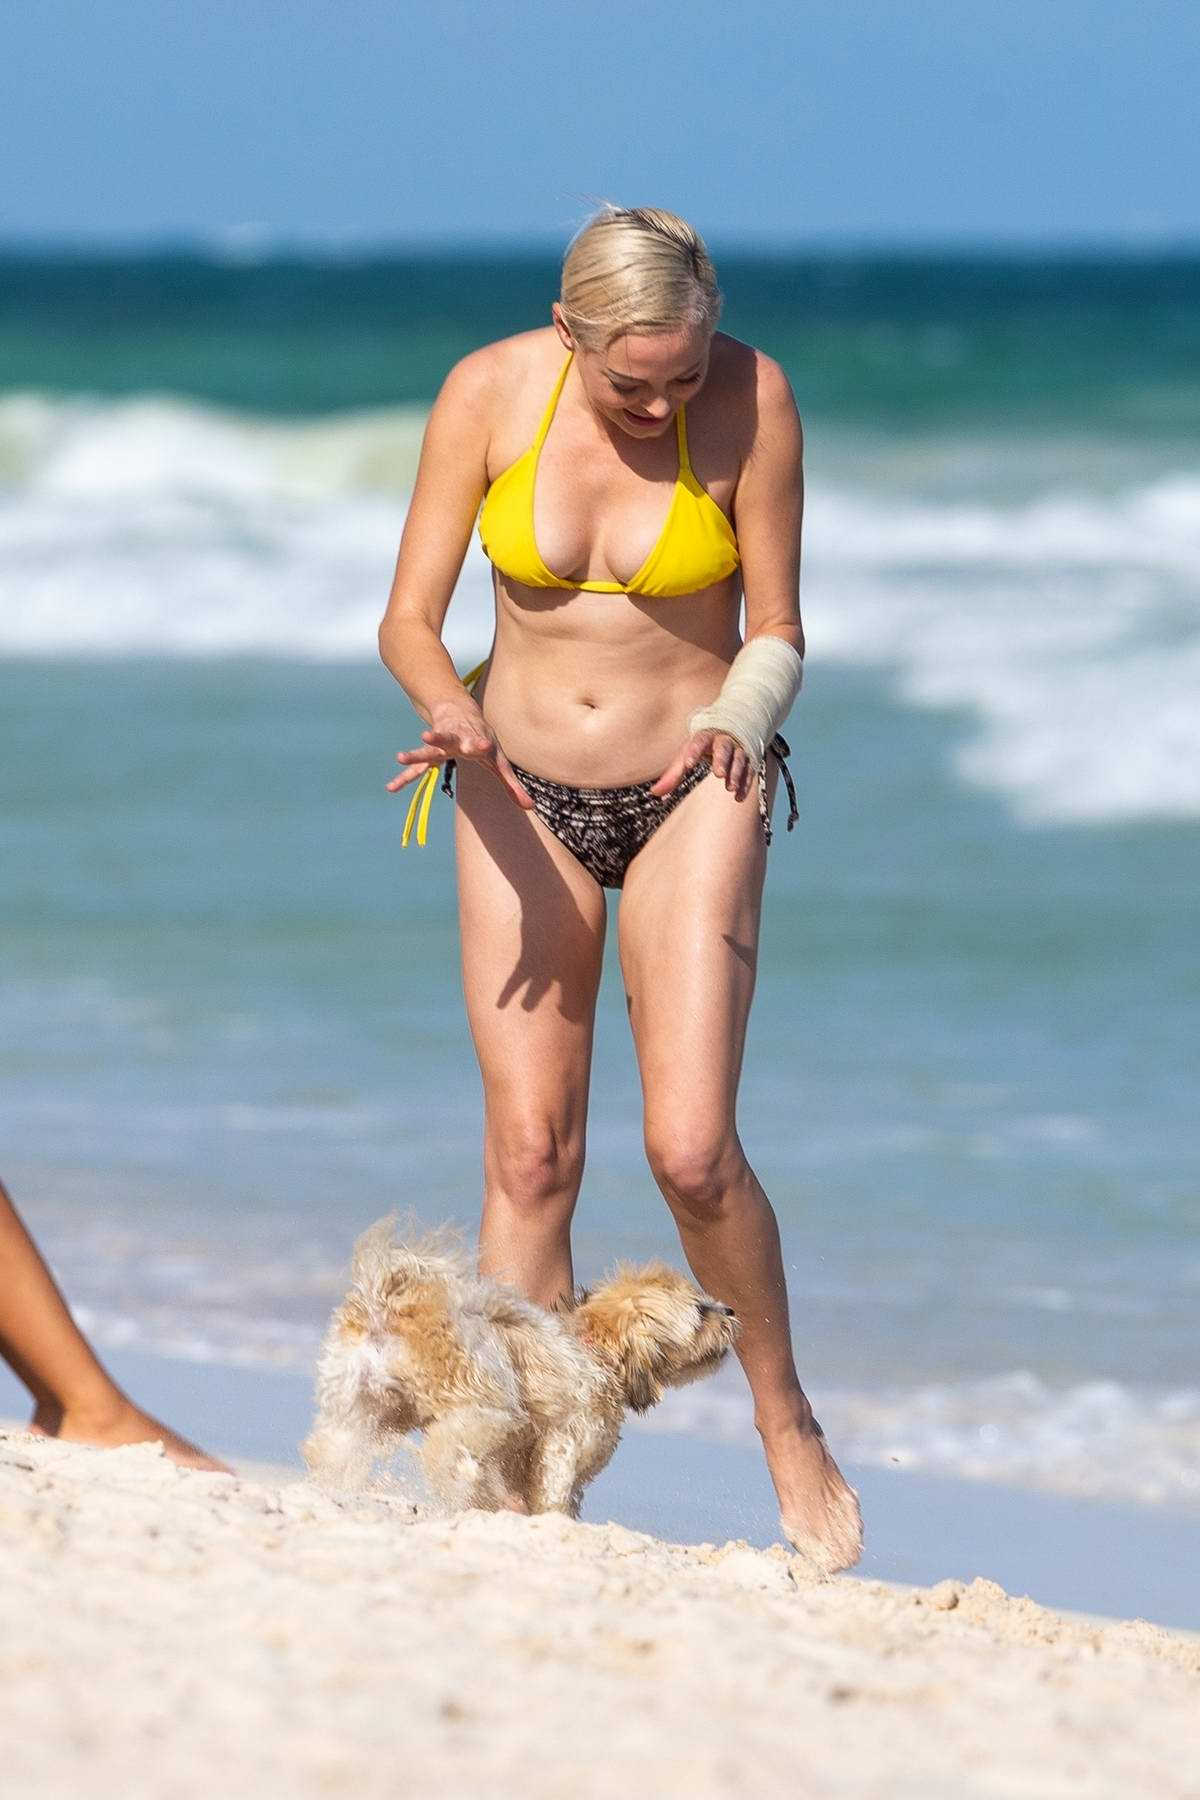 Rose McGowan seen wearing a yellow bikini while playing with her pup at the beach in Tulum, Mexico